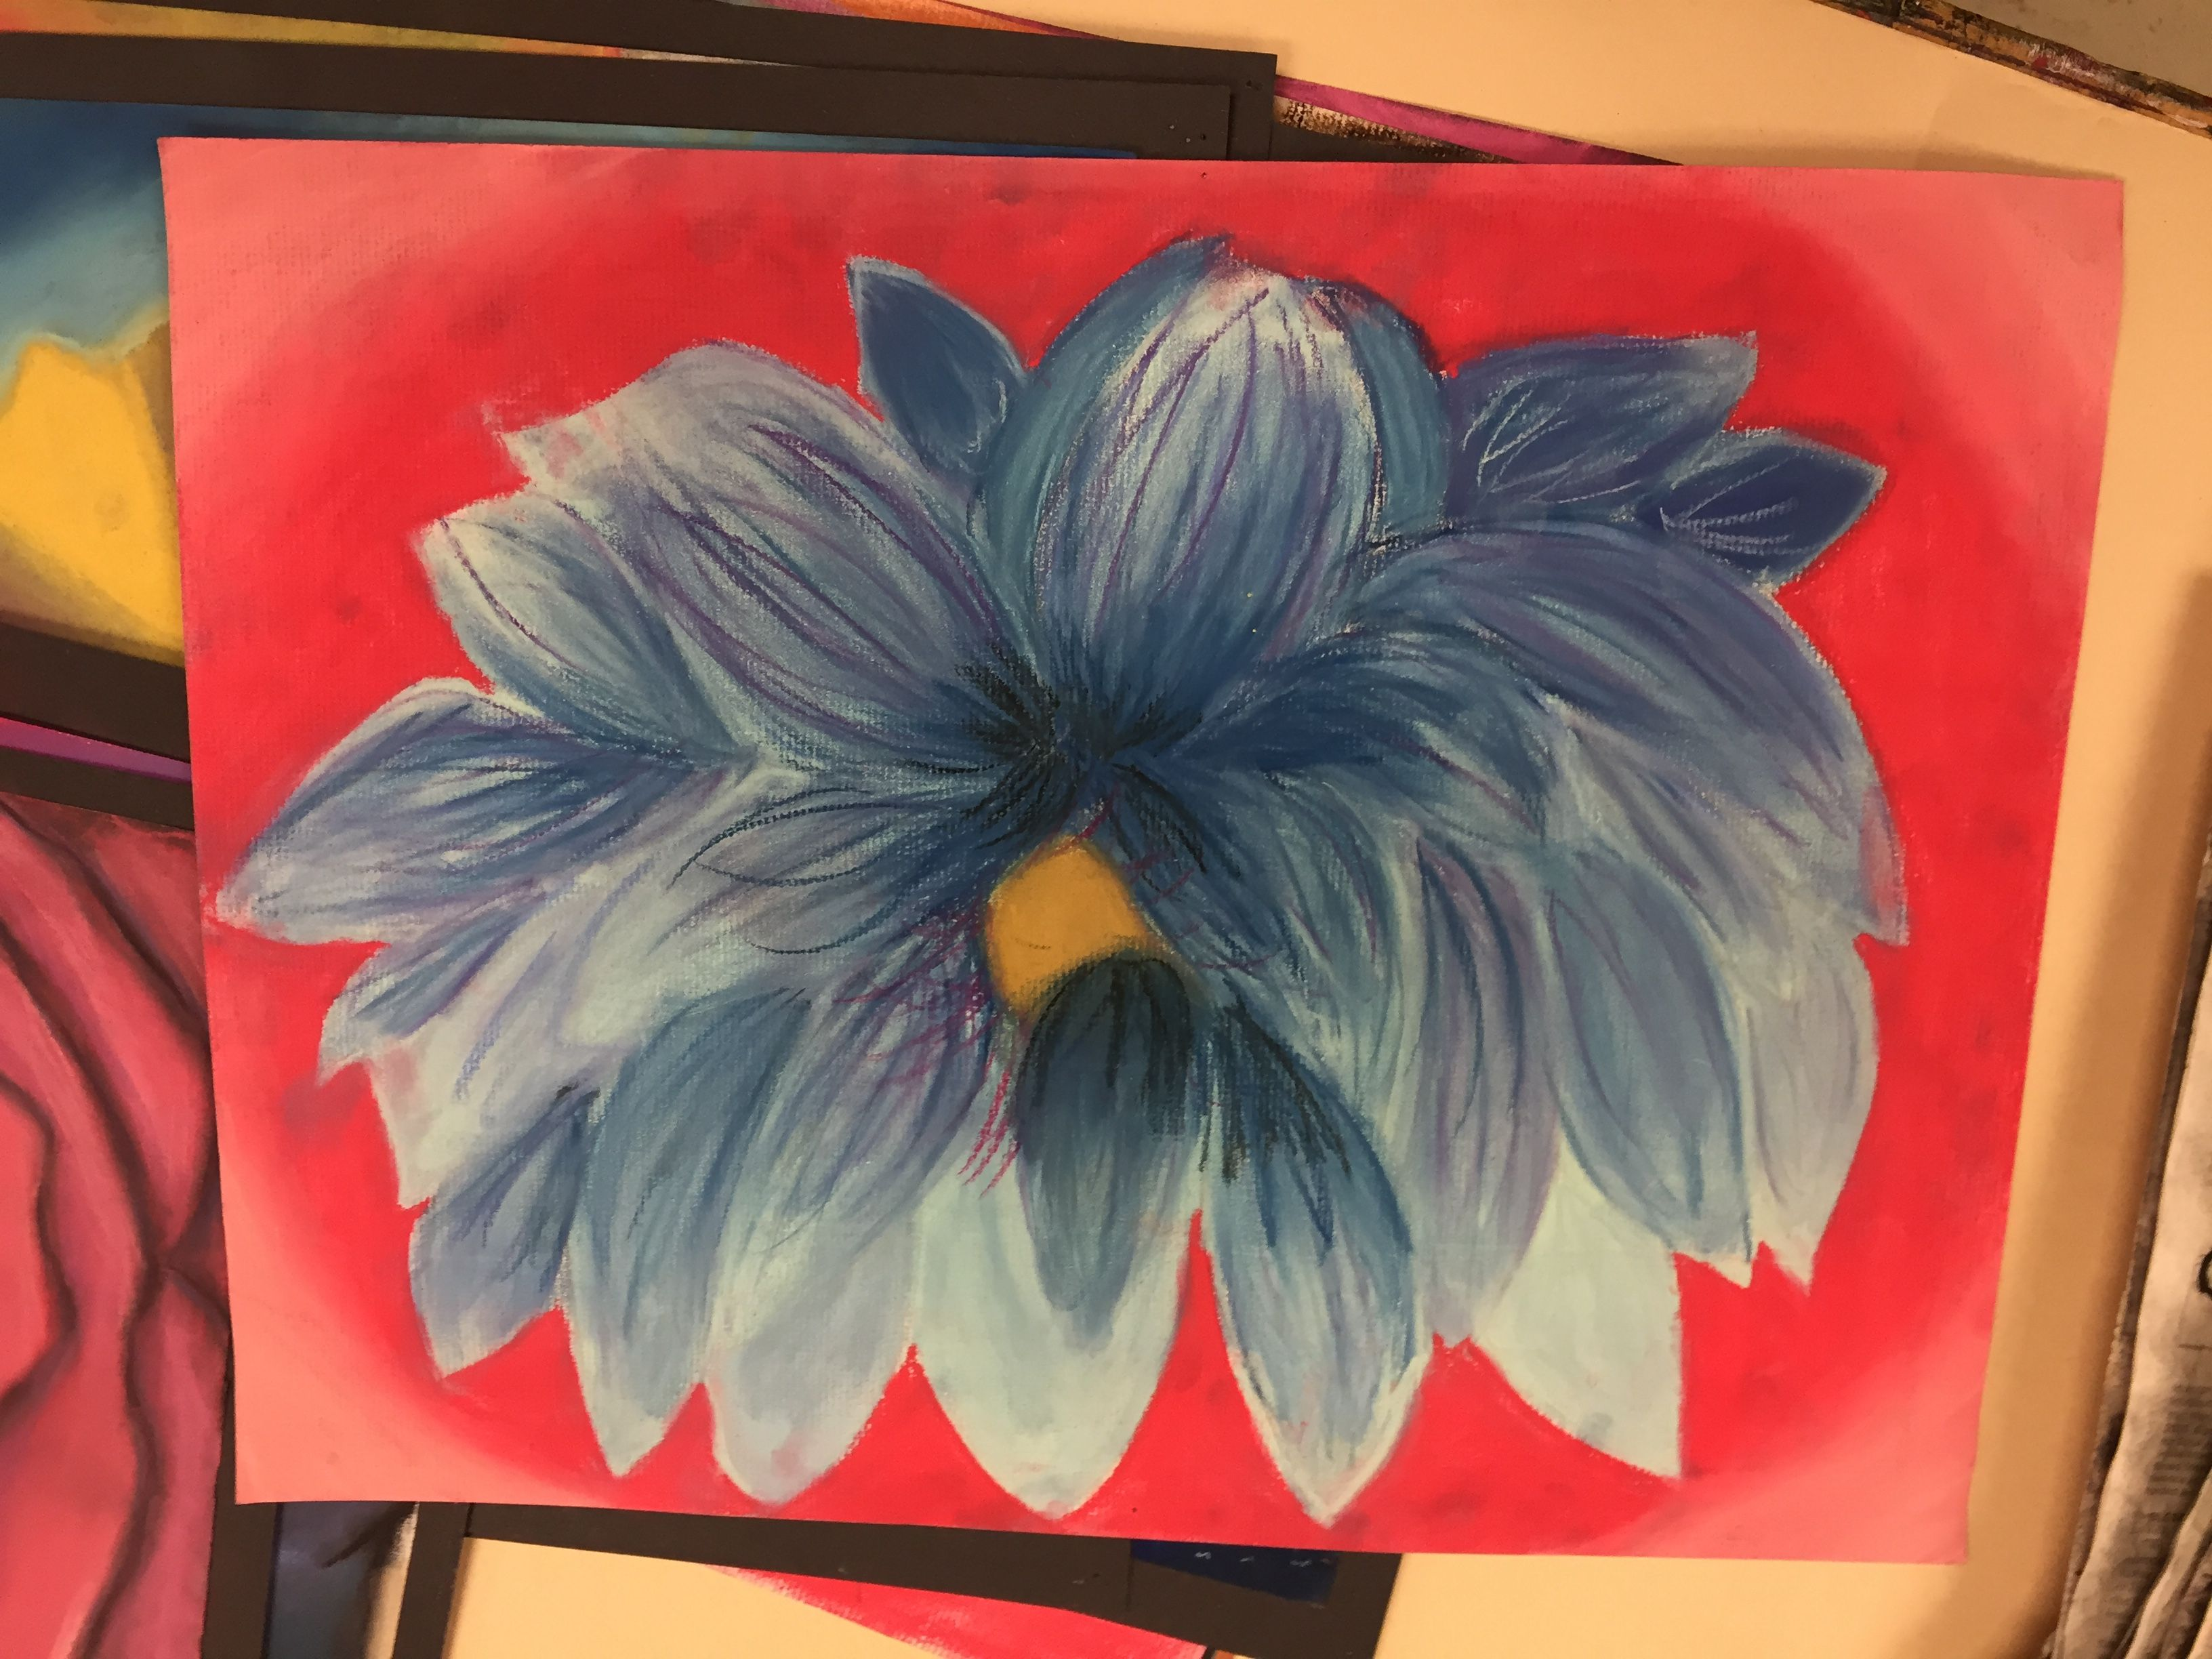 Medium: Pastel chalk This is a drawing of a lotus flower, colored with cool colors. I used the streak method for more value and detail.